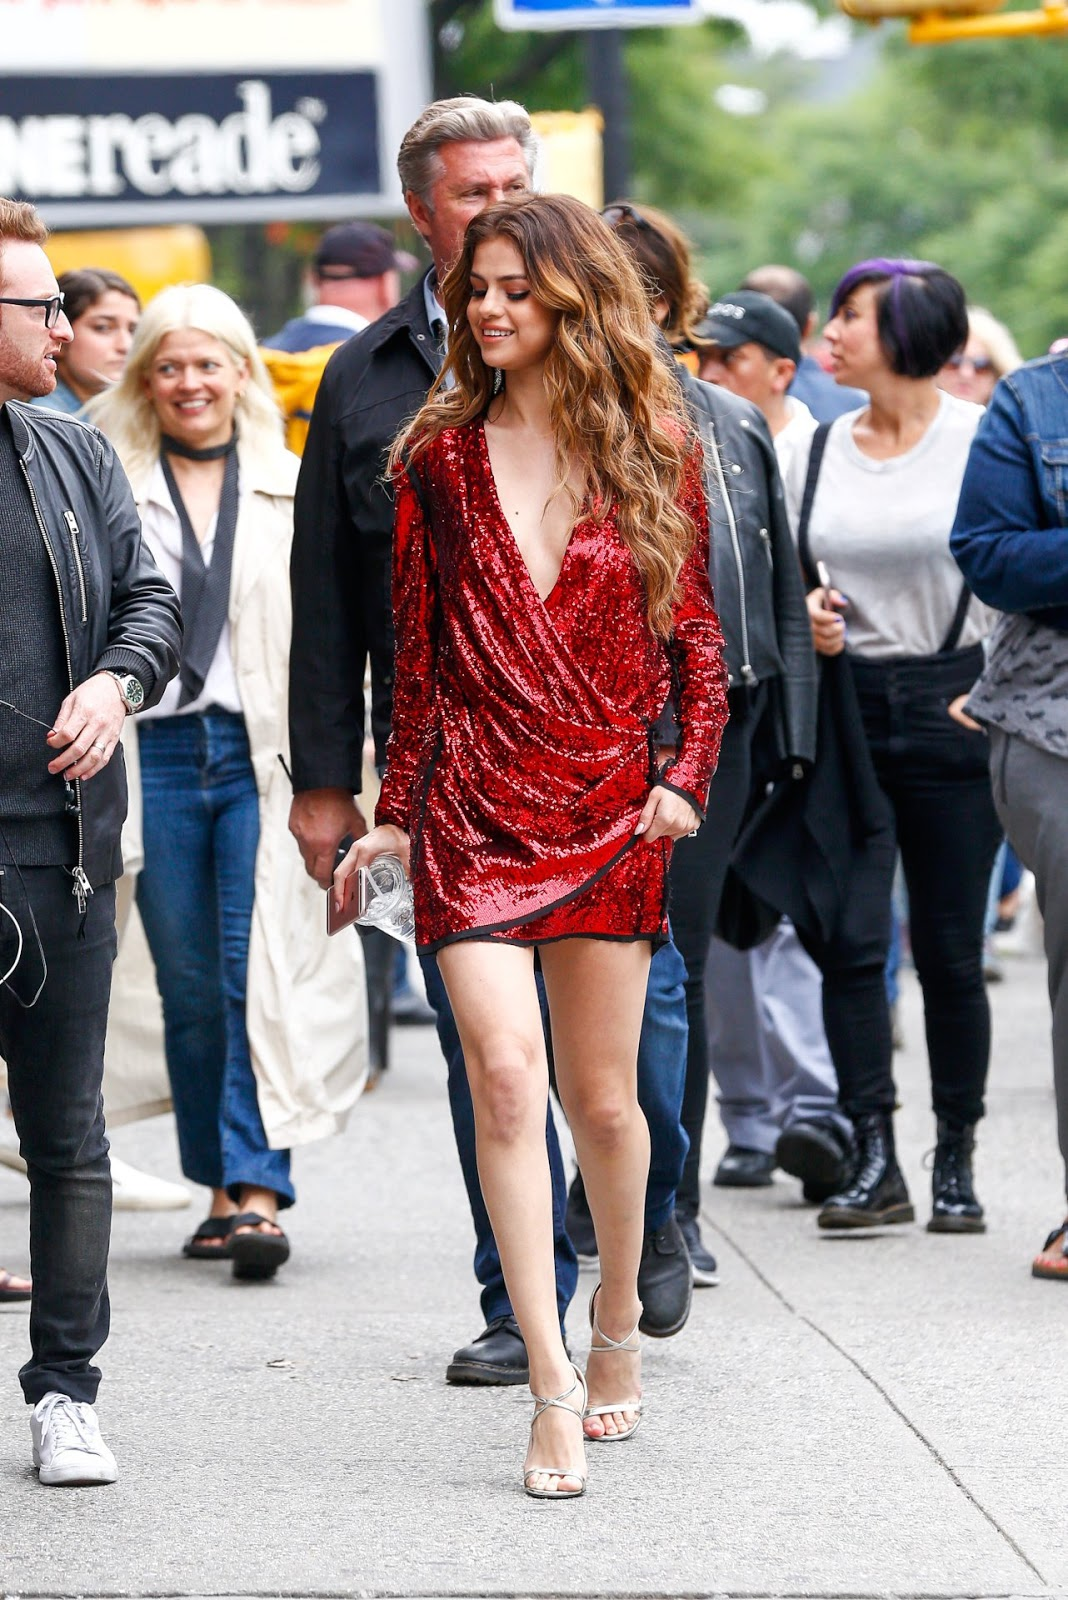 Selena Gomez seen in a plunging dress for photoshoot in NYC